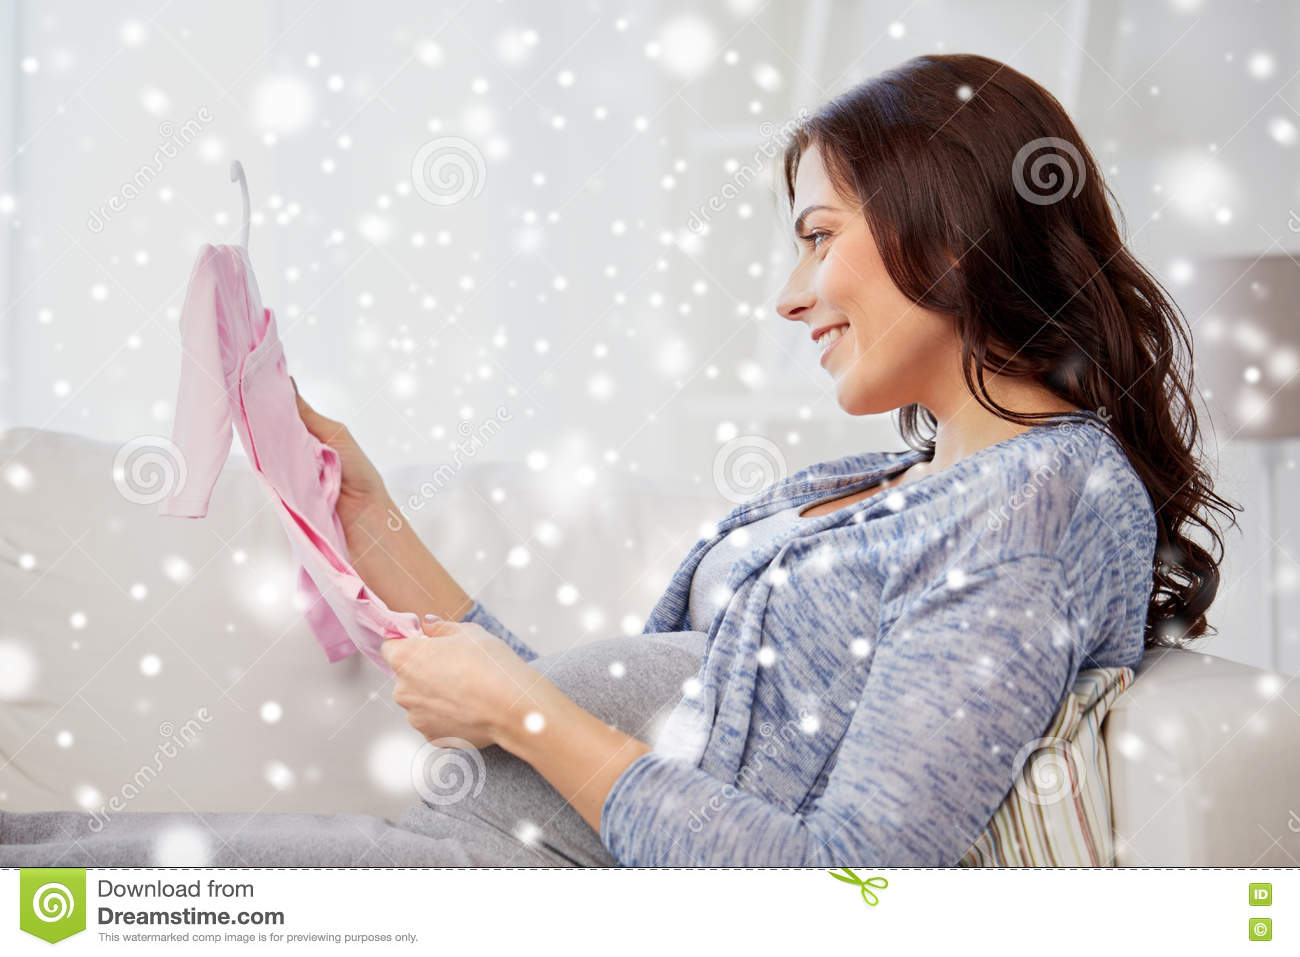 b420f07d2454e Motherhood, pregnancy, people, winter and kids clothing concept - happy  woman holding and looking at pink baby girls bodysuit at home over snow